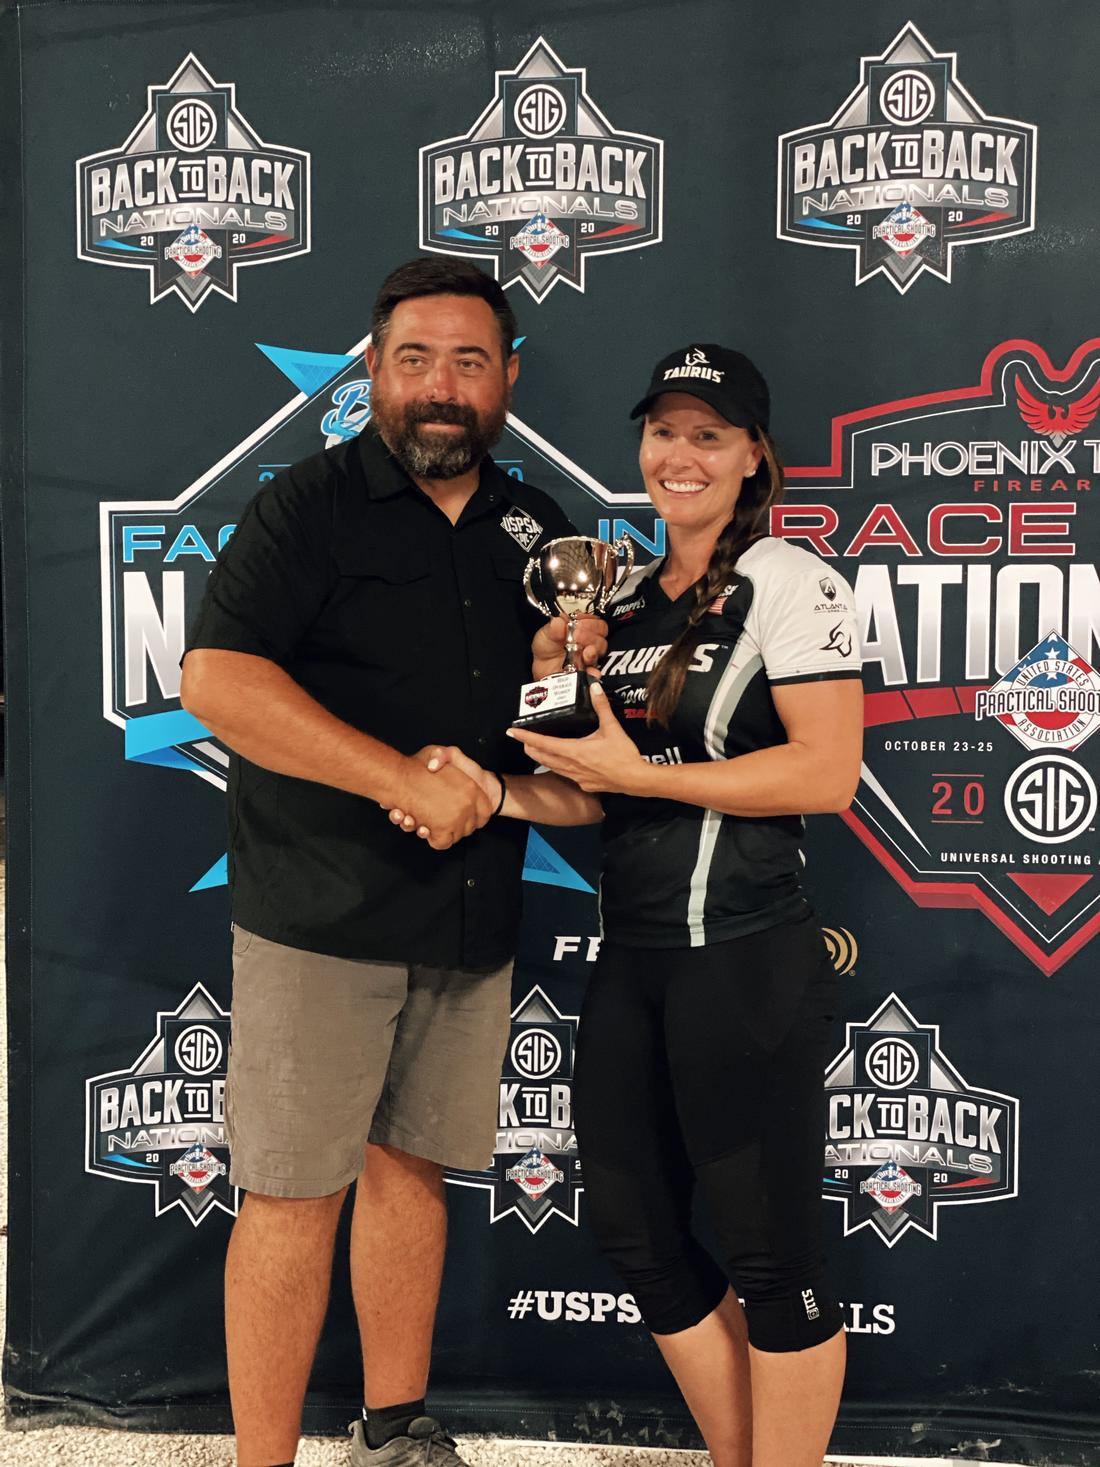 President of USPSA, Mike Foley, congratulates Jessie Harrison for her win at the 2020 Race Gun Nationals.